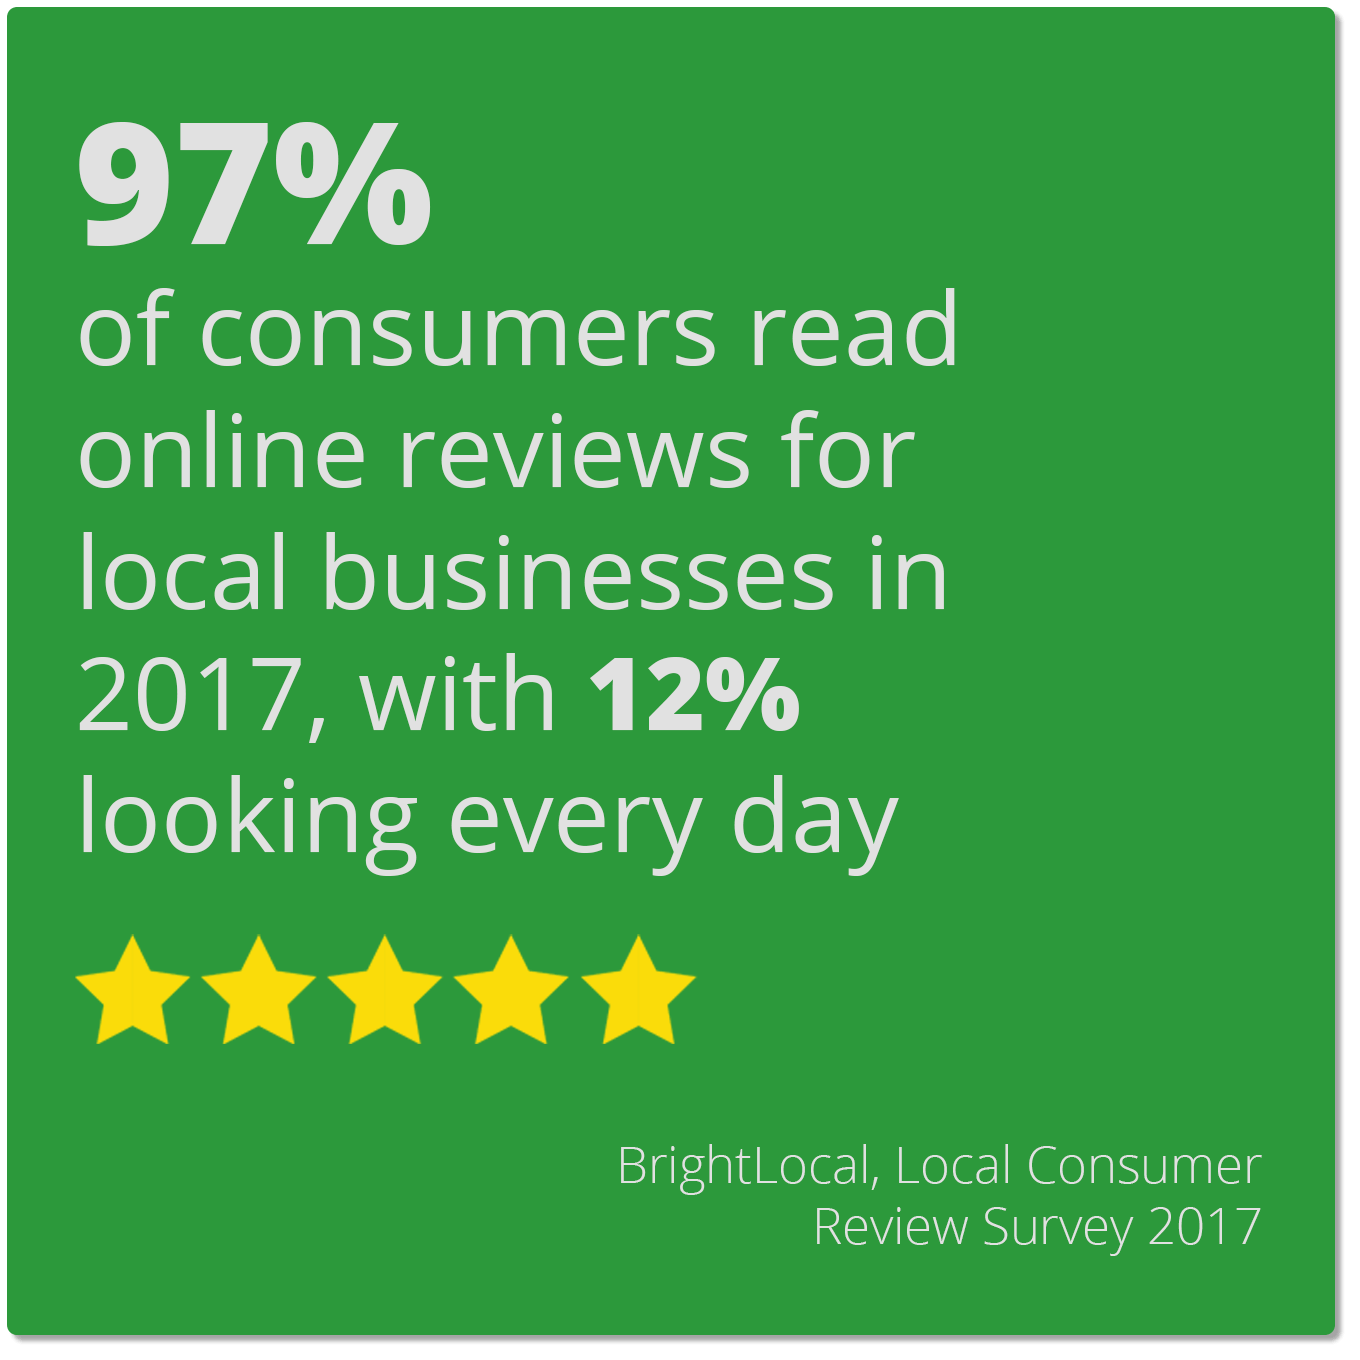 97% of consumers read online reviews for local businesses in 2017, with 12% looking every day